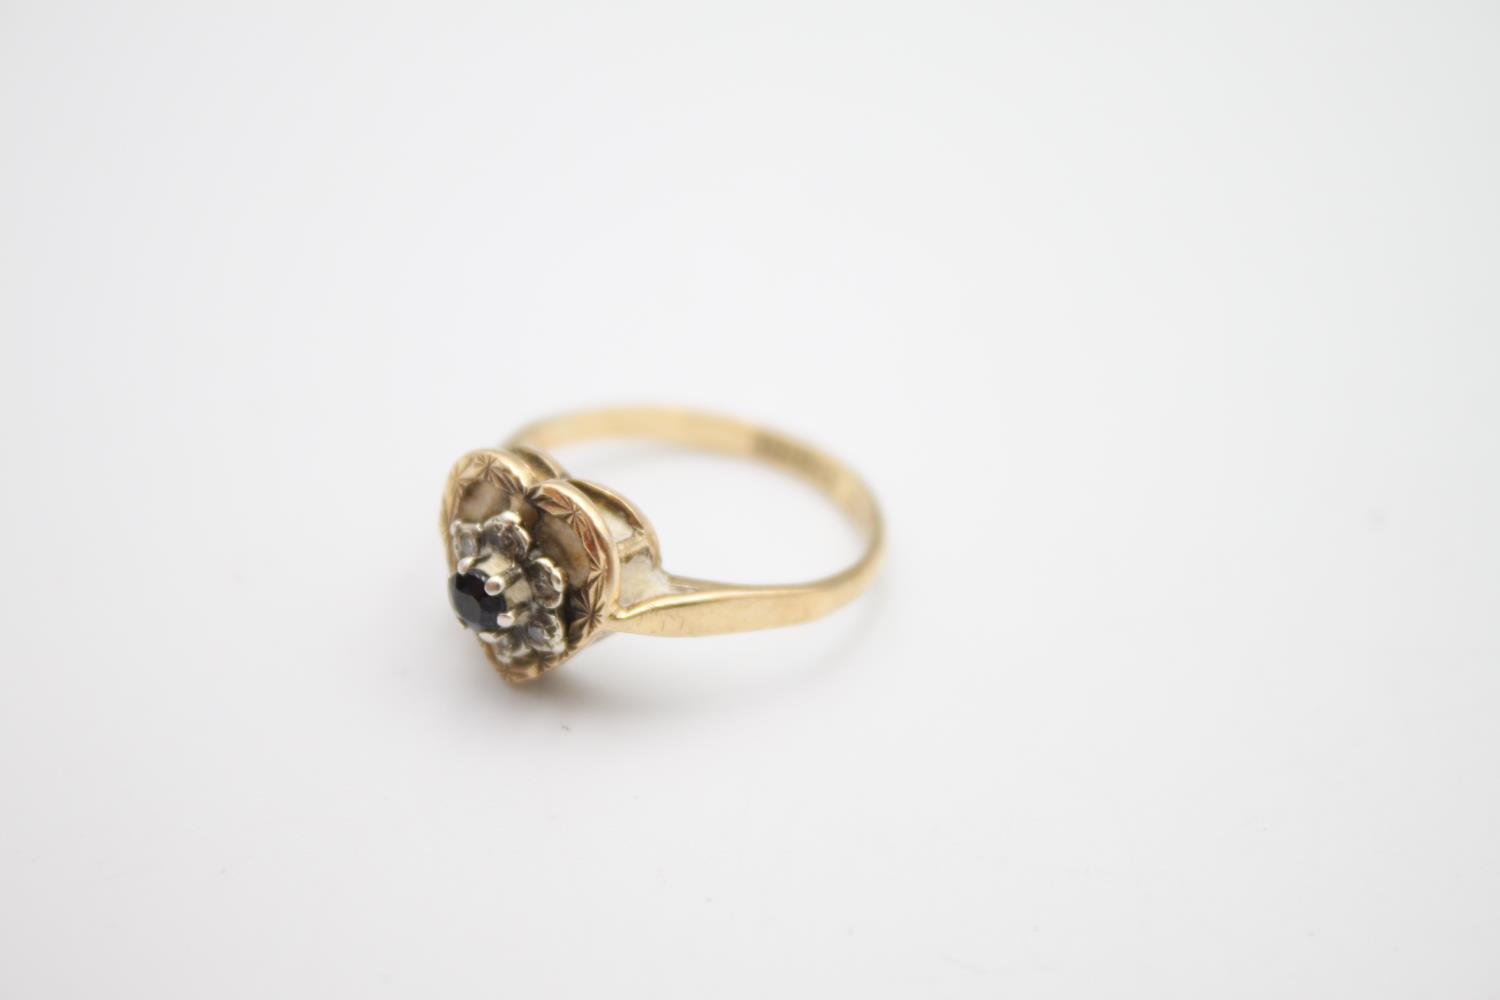 9ct gold diamond sapphire cluster ring 2.7g Size L - Image 3 of 4